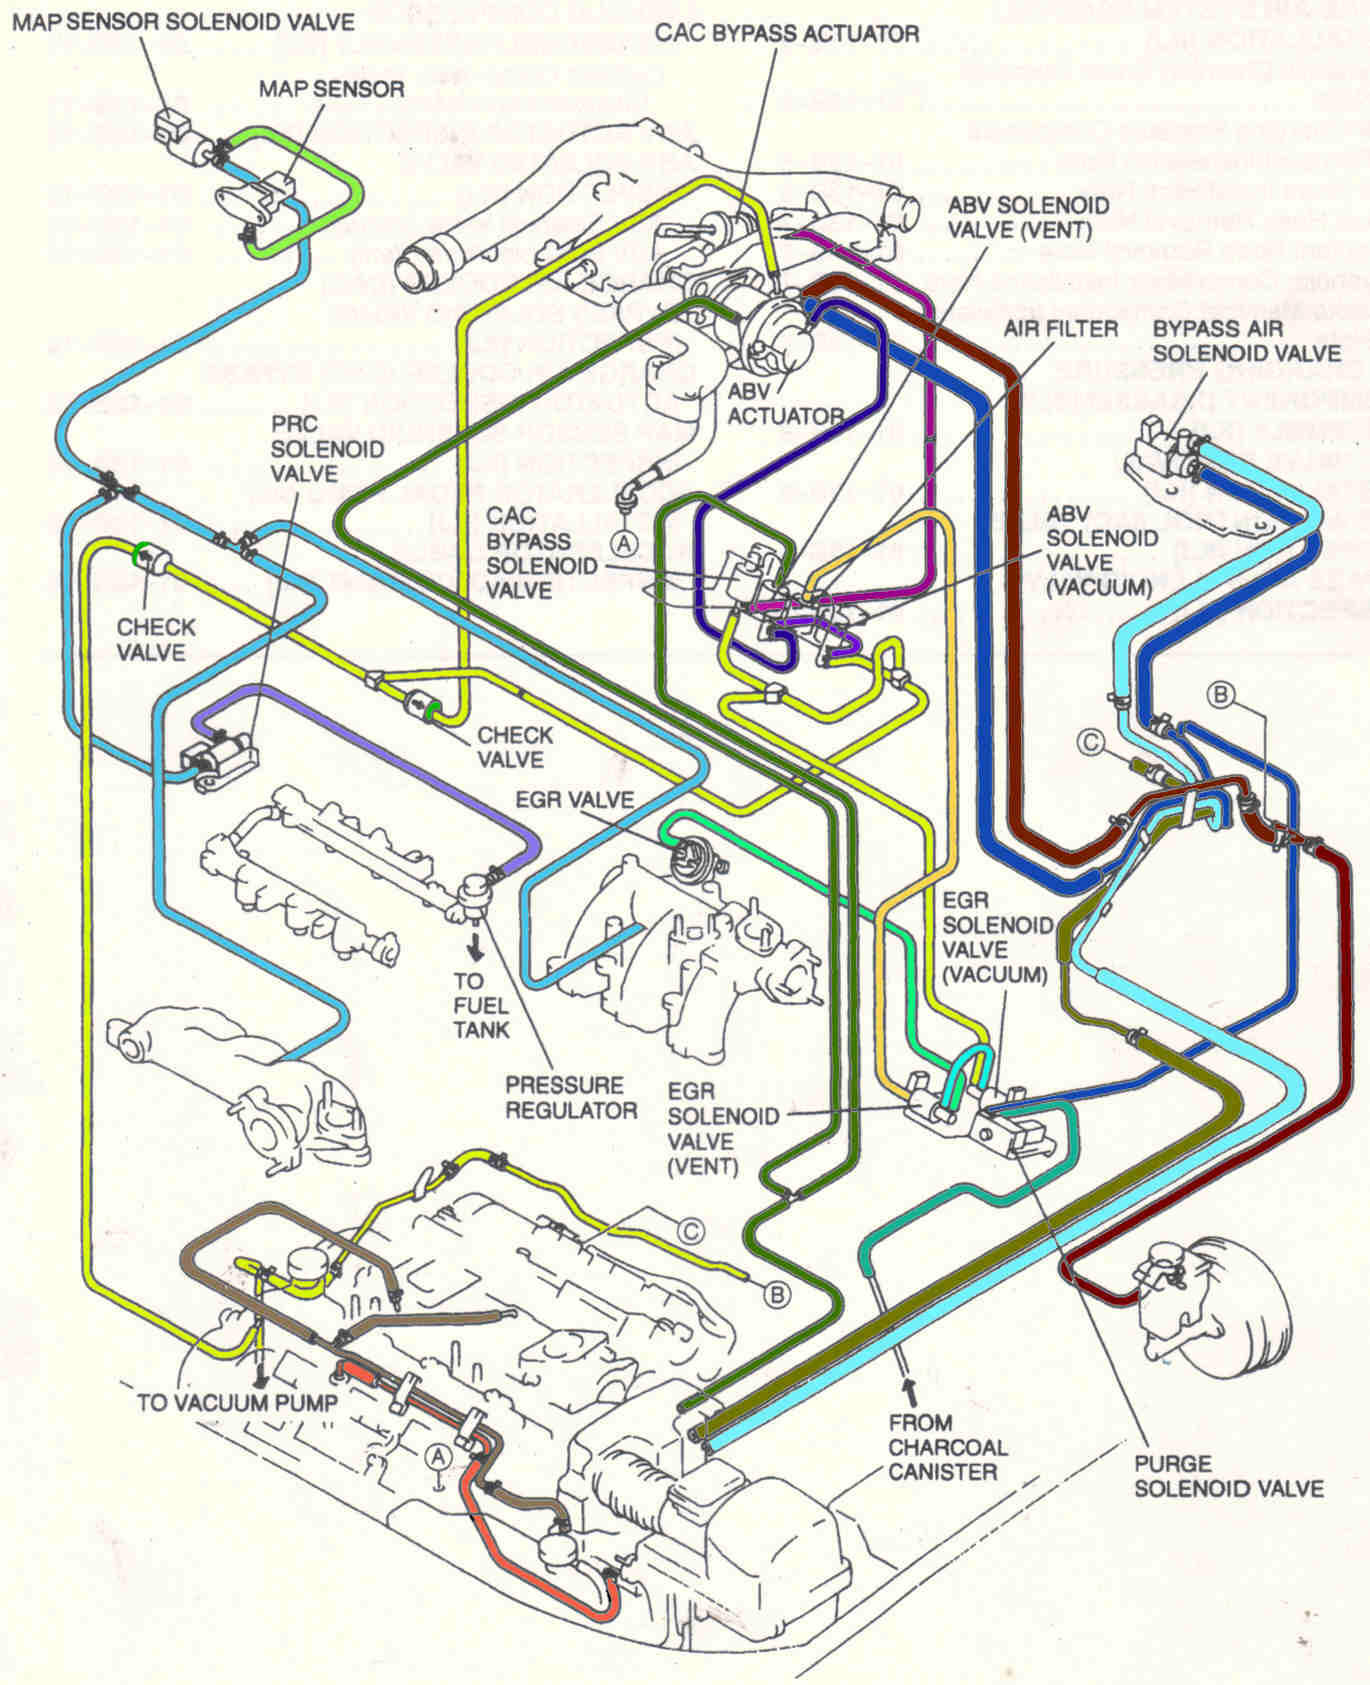 96up kj vachose 300zx wiring diagram dolgular com  at reclaimingppi.co